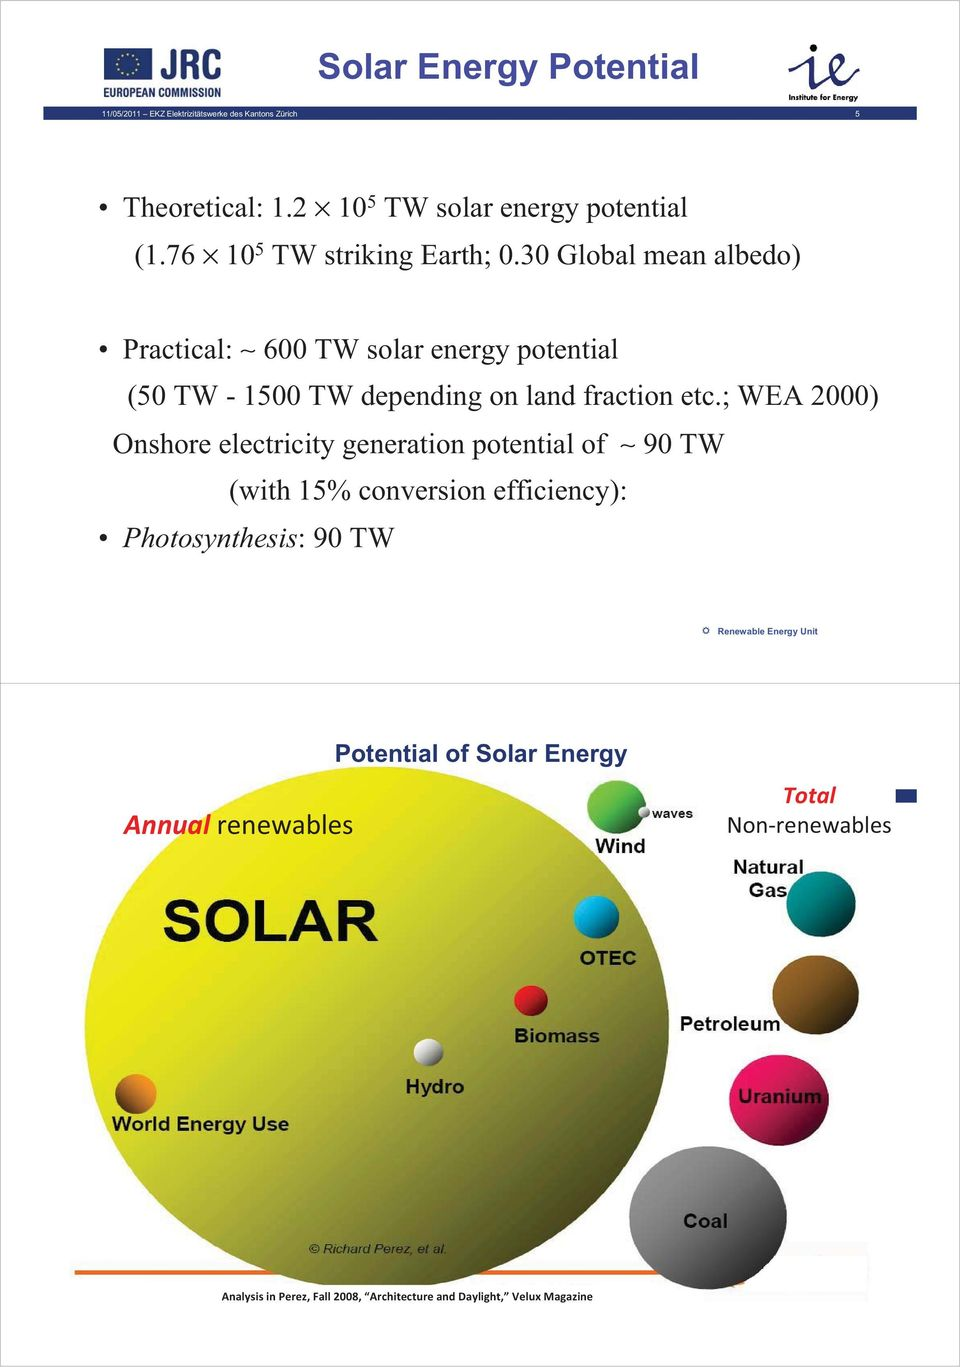 ; WEA 2000) Onshore electricity generation potential of 90 TW (with 15% conversion efficiency): Photosynthesis: 90 TW Potential of Solar Energy